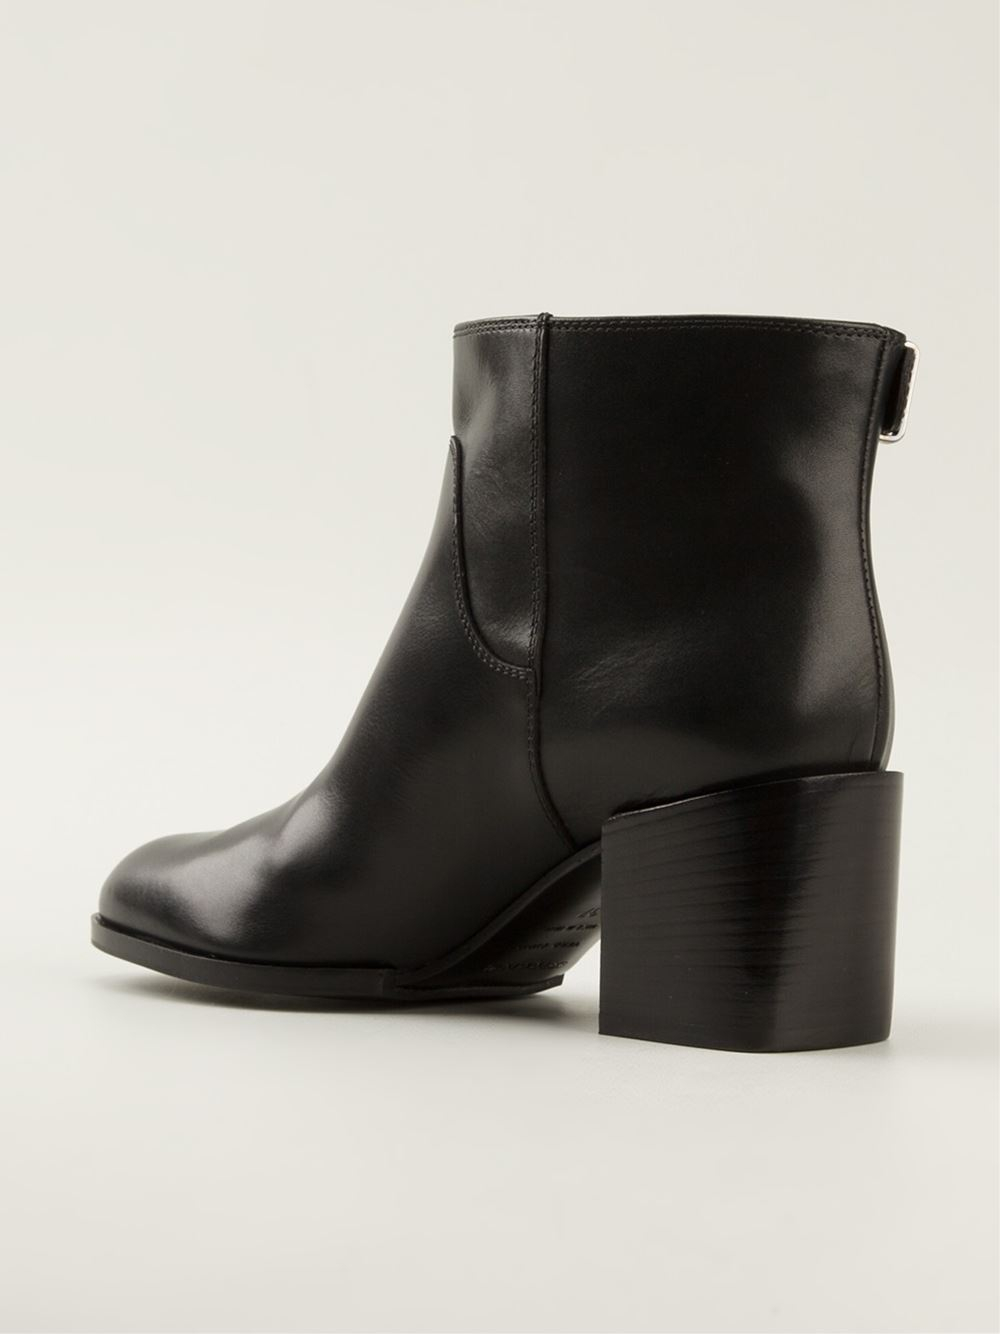 Sergio Rossi Buckled Ankle Boots In Black Lyst